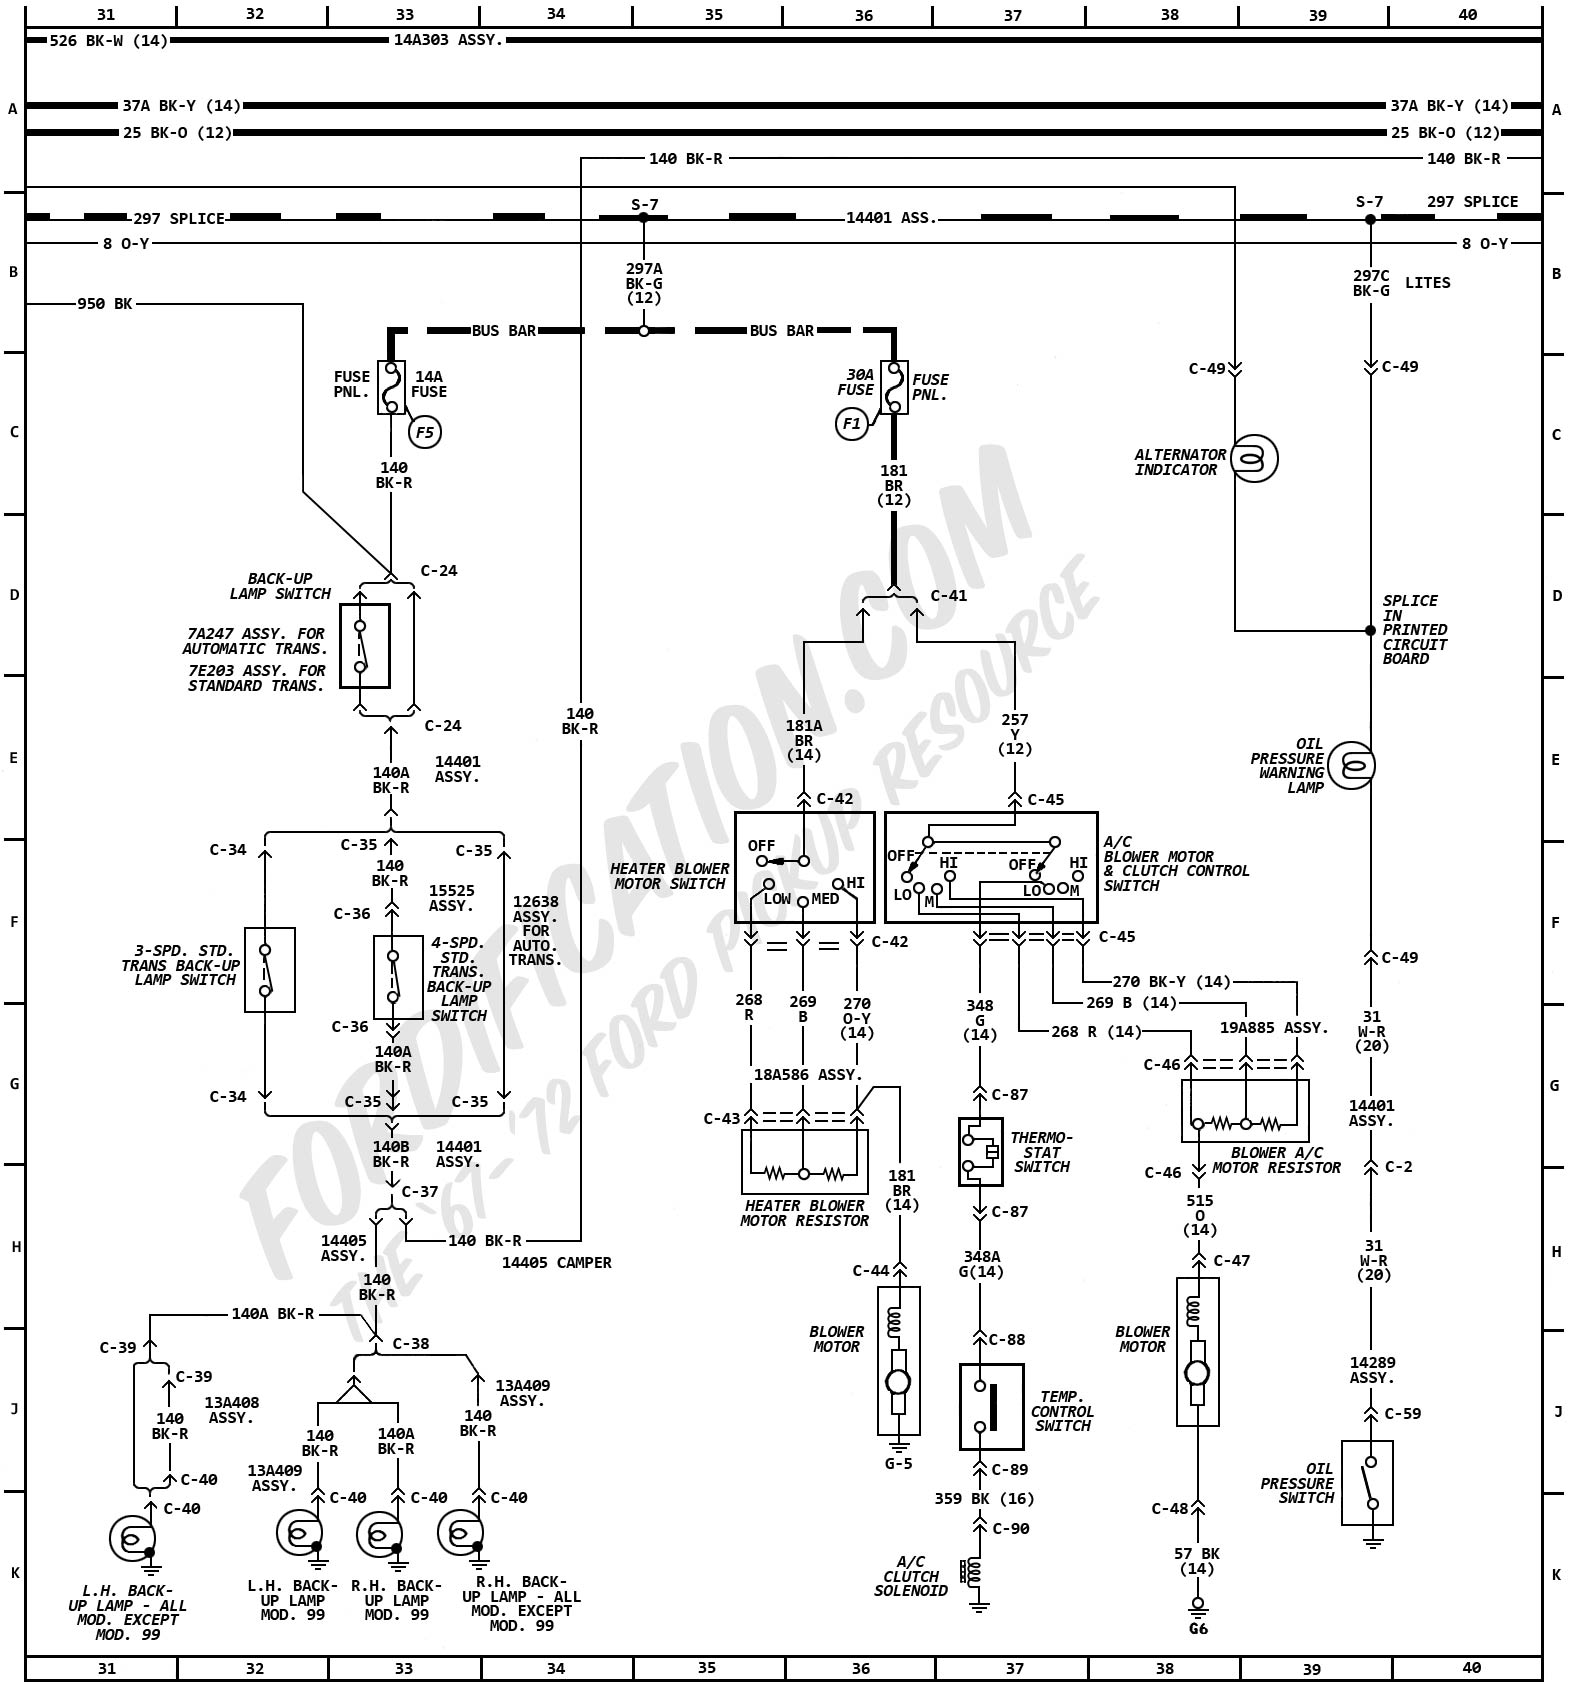 1972MasterWiring_04 1972 ford truck wiring diagrams fordification com 2007 Mustang Wiring Diagram at gsmportal.co